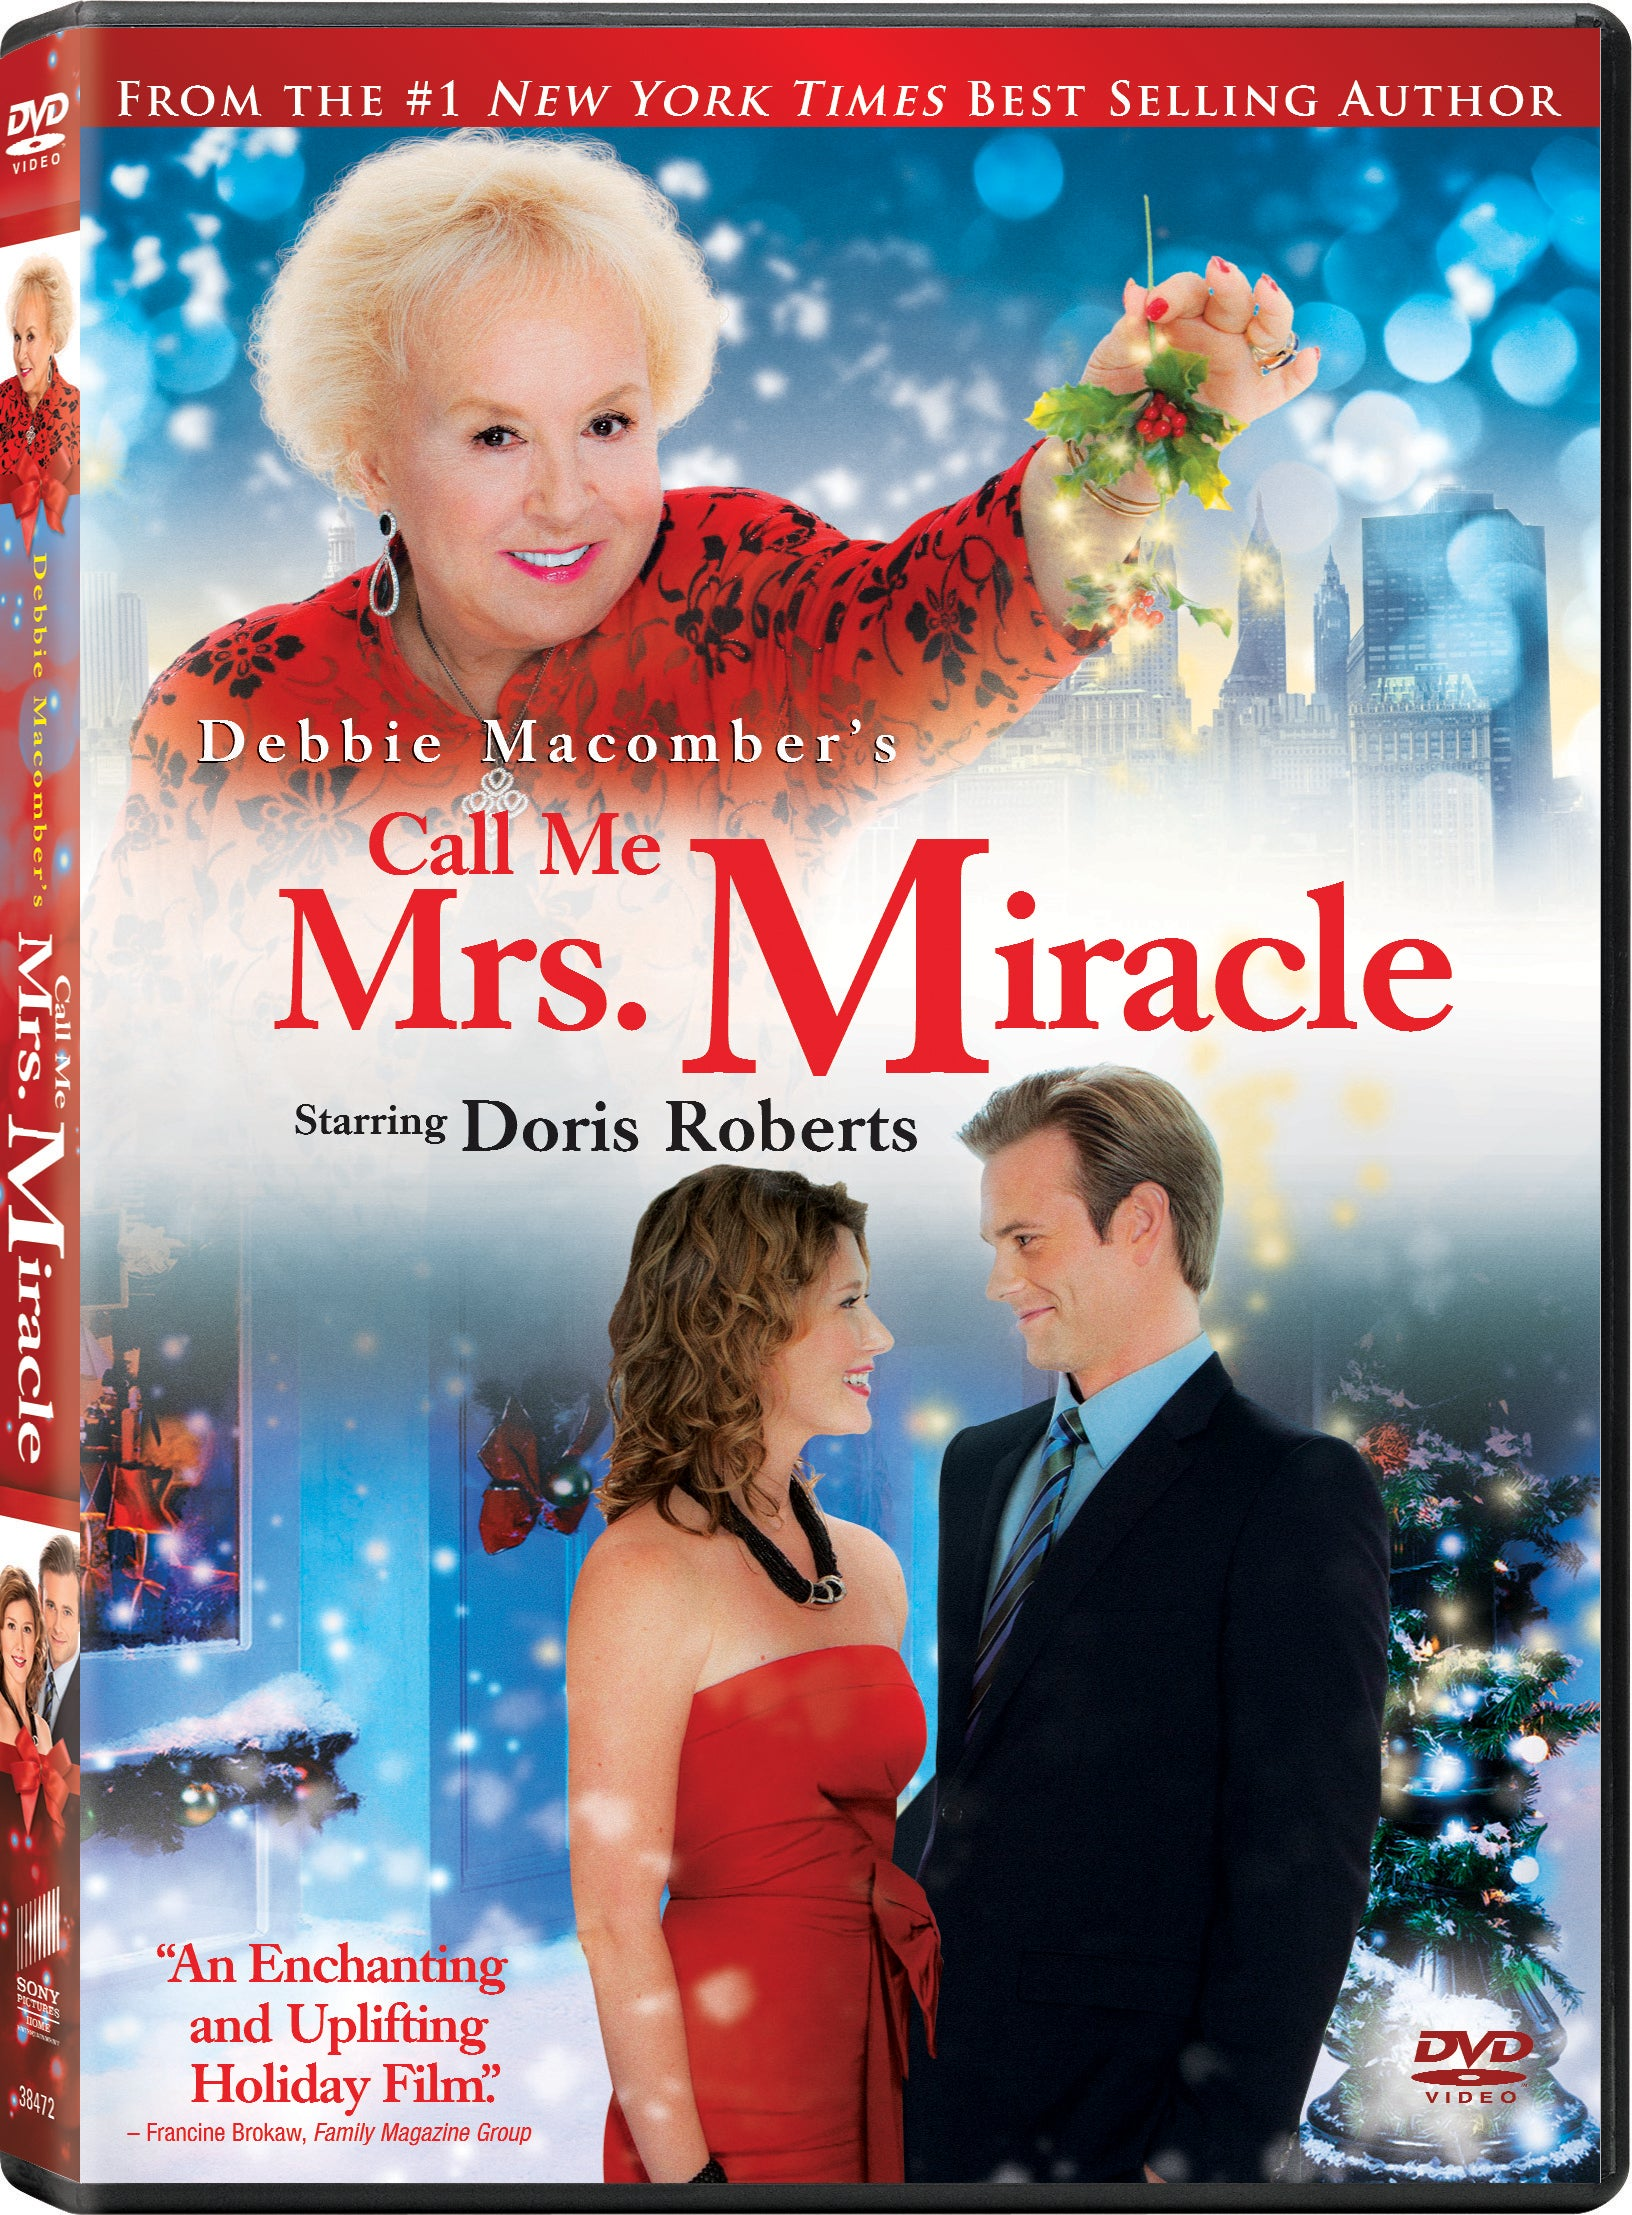 Call Me Mrs. Miracle (DVD)